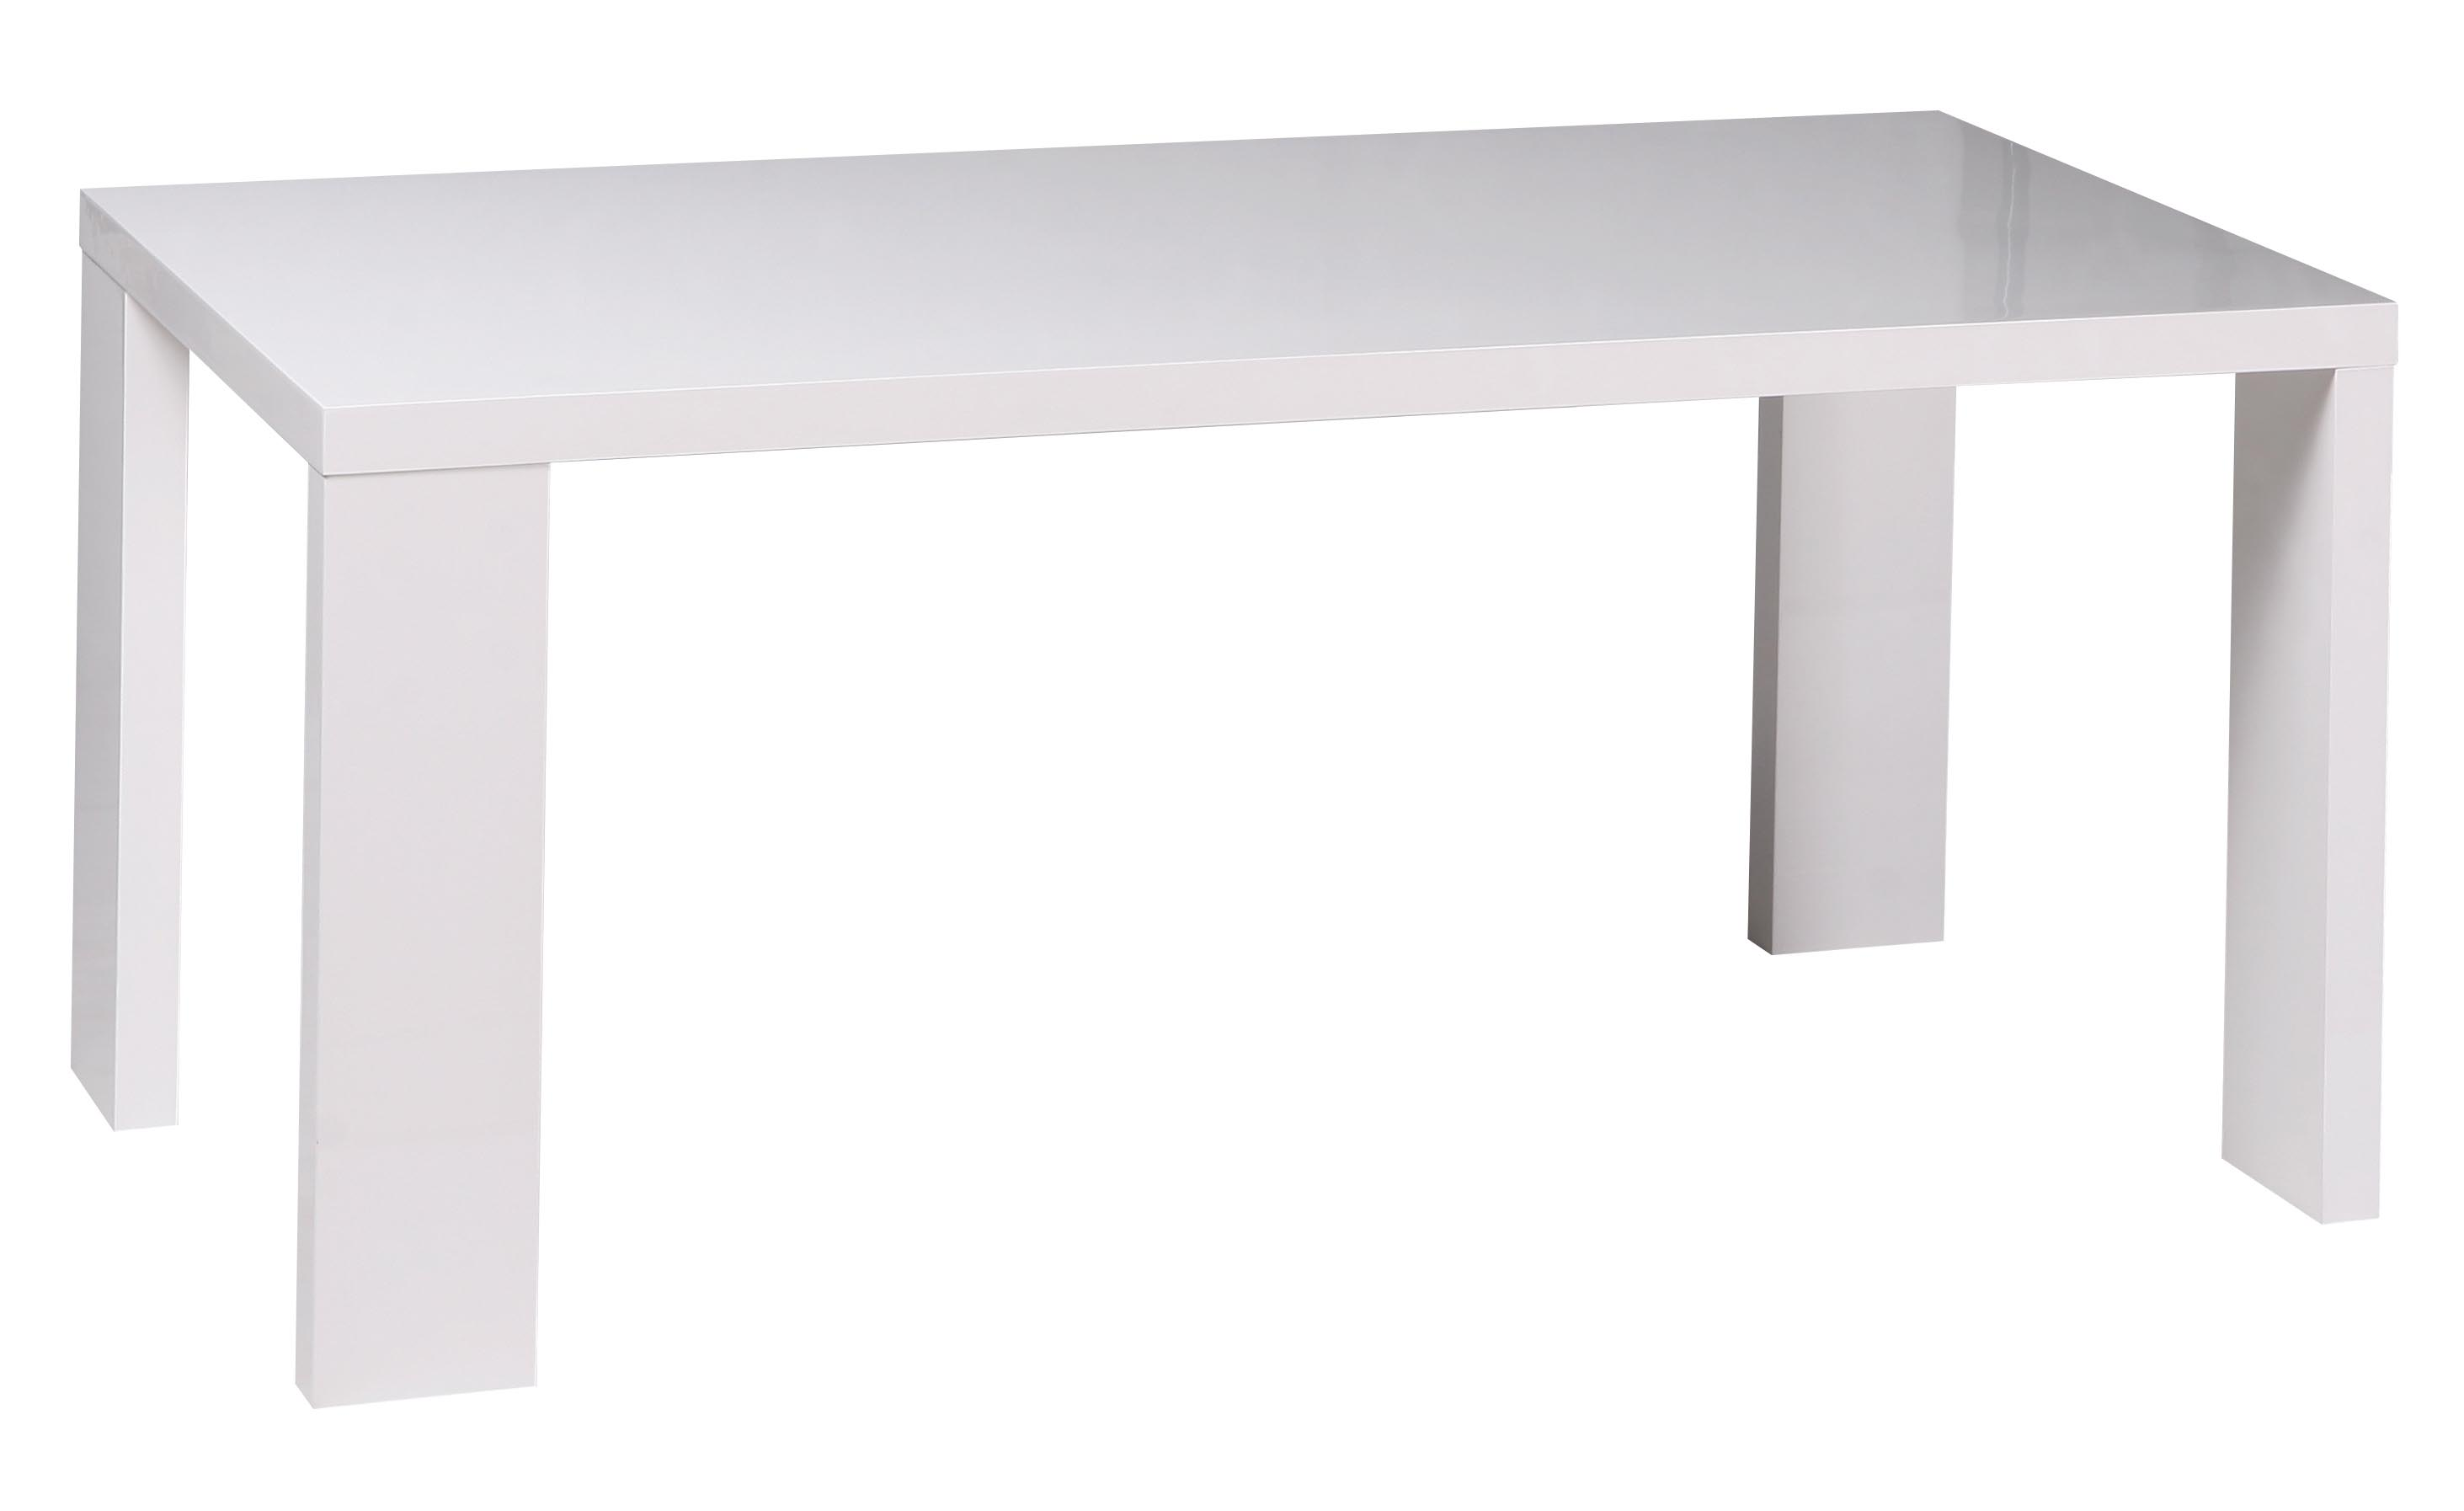 Coin Repas Tables Repas Table Repas Rectangulaire 160 Cm Laqu Blanc L A Le Magasin D